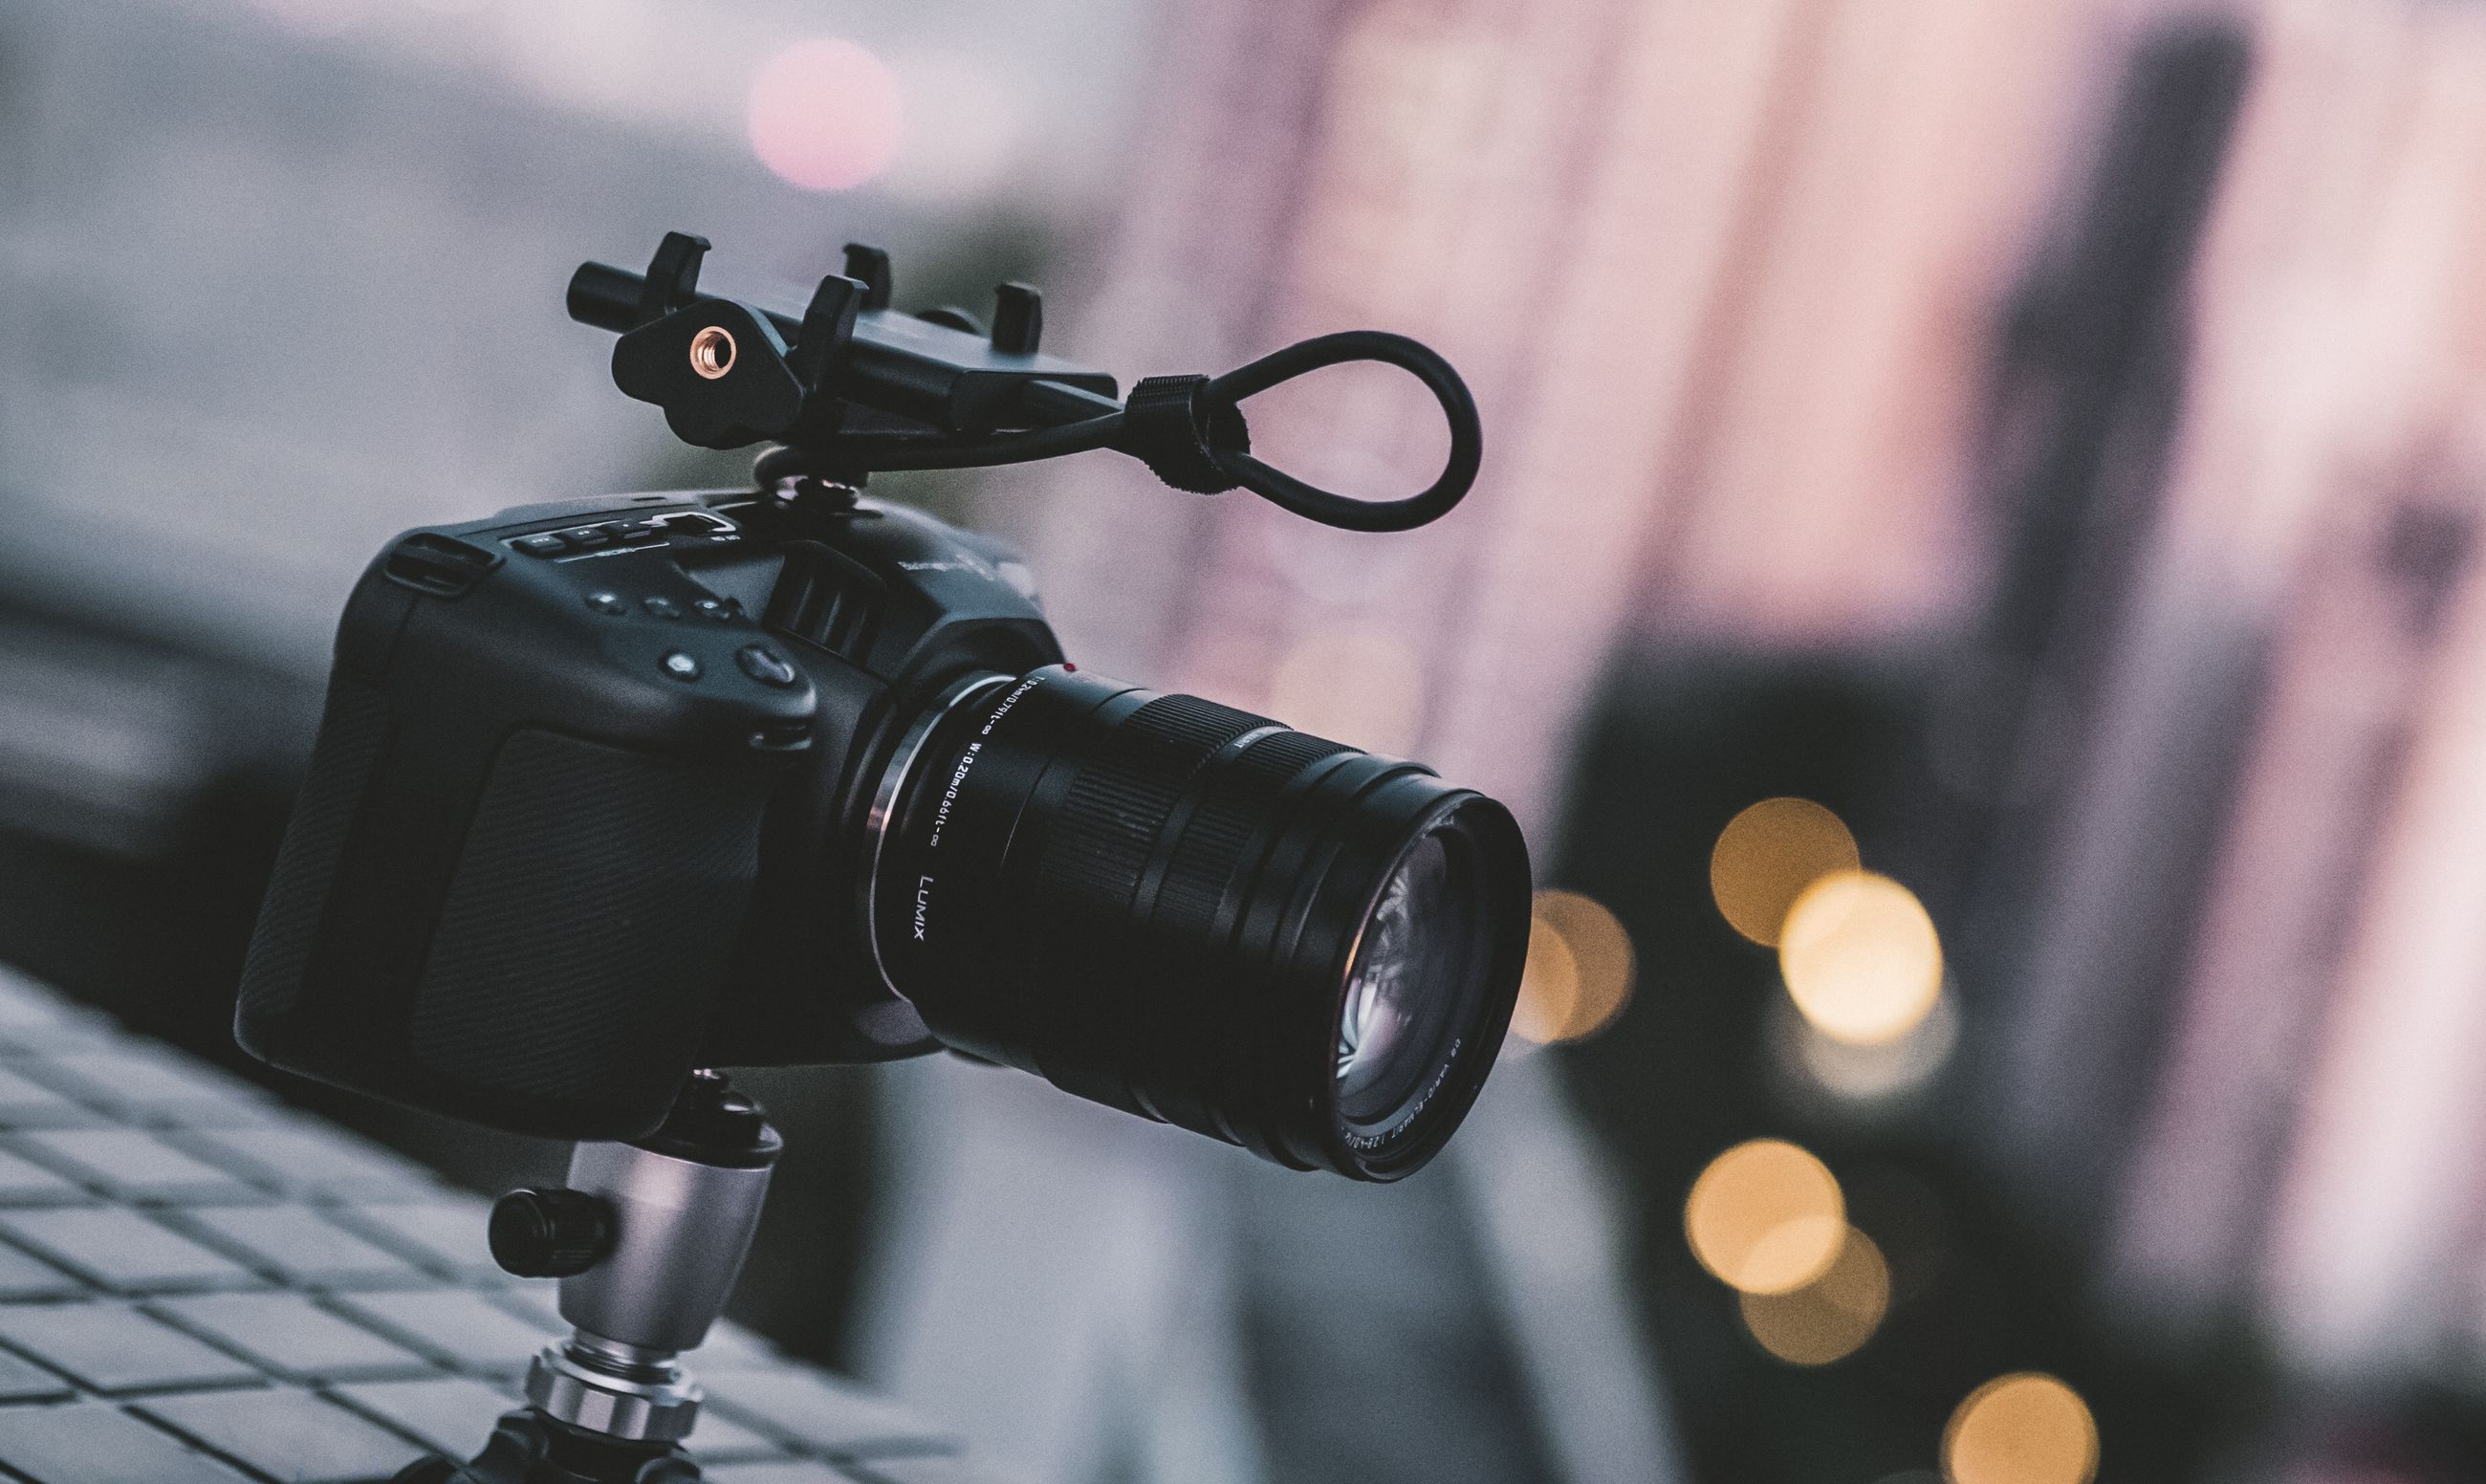 technology, focus on foreground, camera - photographic equipment, photography themes, close-up, photographic equipment, camera, digital camera, no people, arts culture and entertainment, lens - optical instrument, tripod, communication, day, black color, equipment, film industry, microphone, cable, input device, slr camera